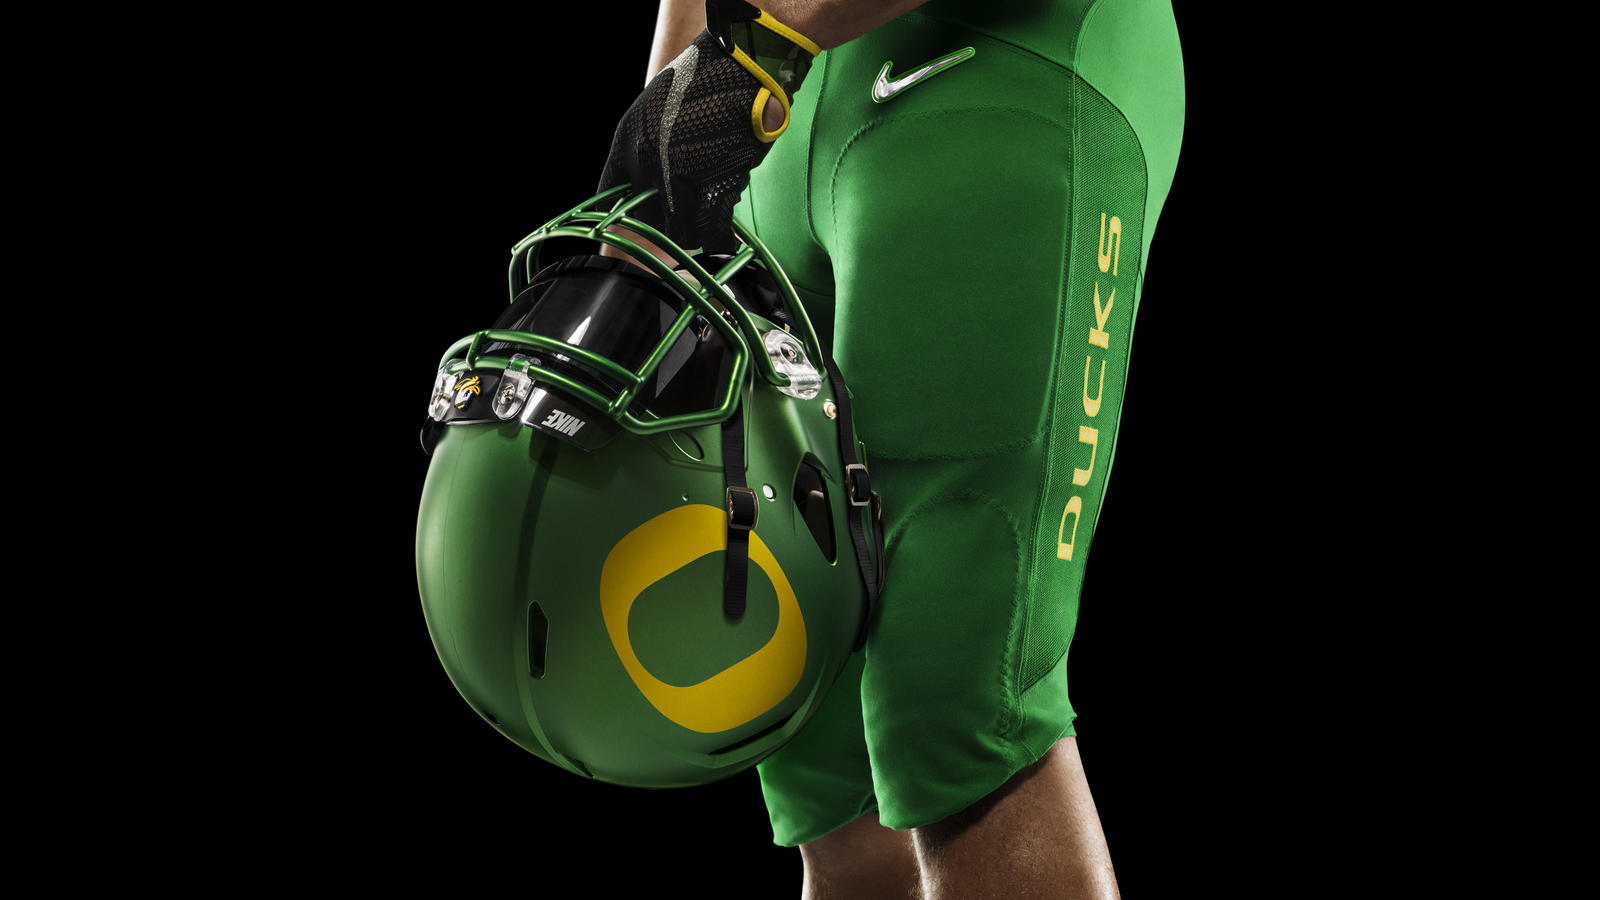 44853_253529_01a_HO14_NFB_NCAA_Oregon_Detail_398_RGB_crop_1